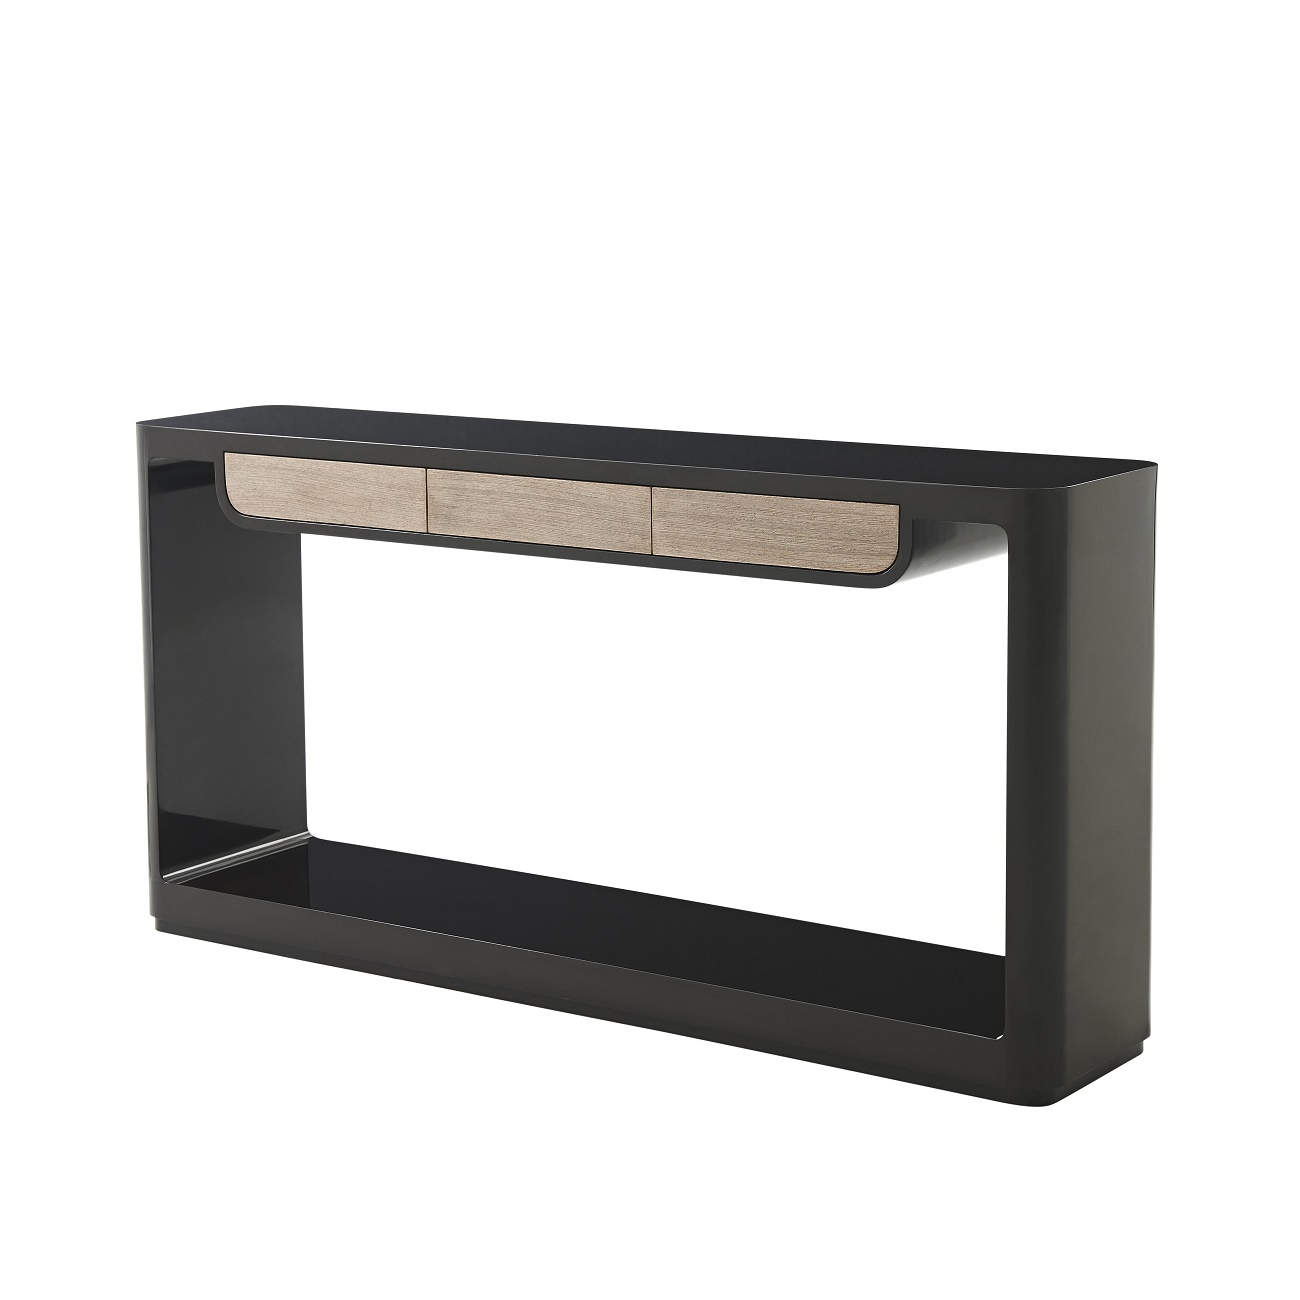 Bauer Console Table, Theodore Alexander Console Brooklyn, New York